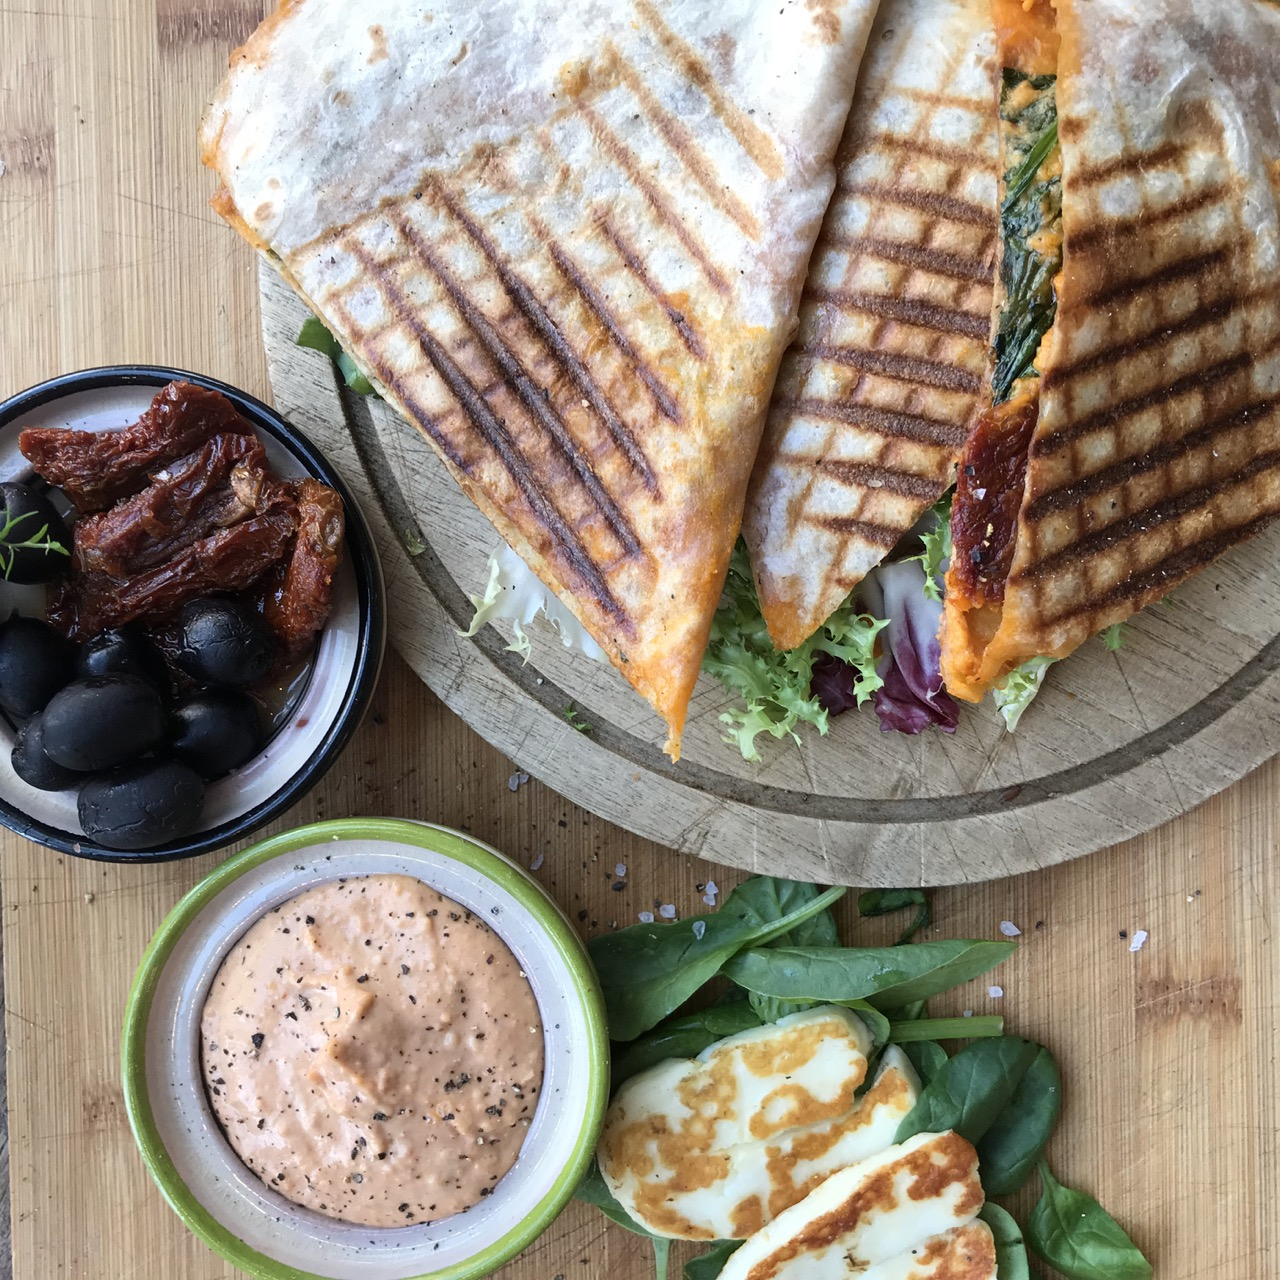 """""""The coffee I had was great and the quesadillas were very tasty. A nice place to have a coffee and a snack with plenty of natural light."""""""